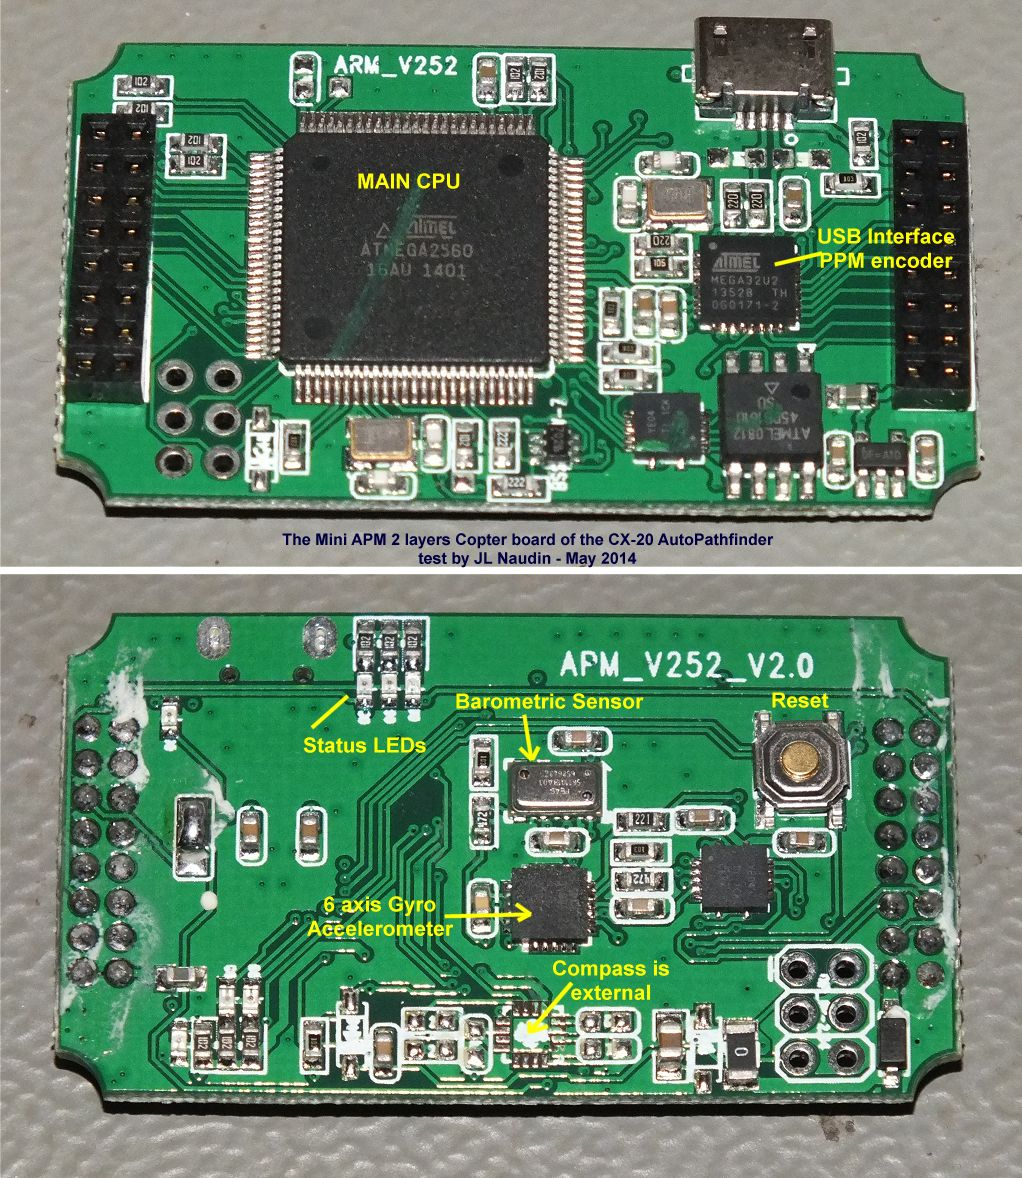 cx20inside06 inside the cheerson cx 20 auto pathfinder (or called the quanum cheerson cx20 wiring diagram at bayanpartner.co